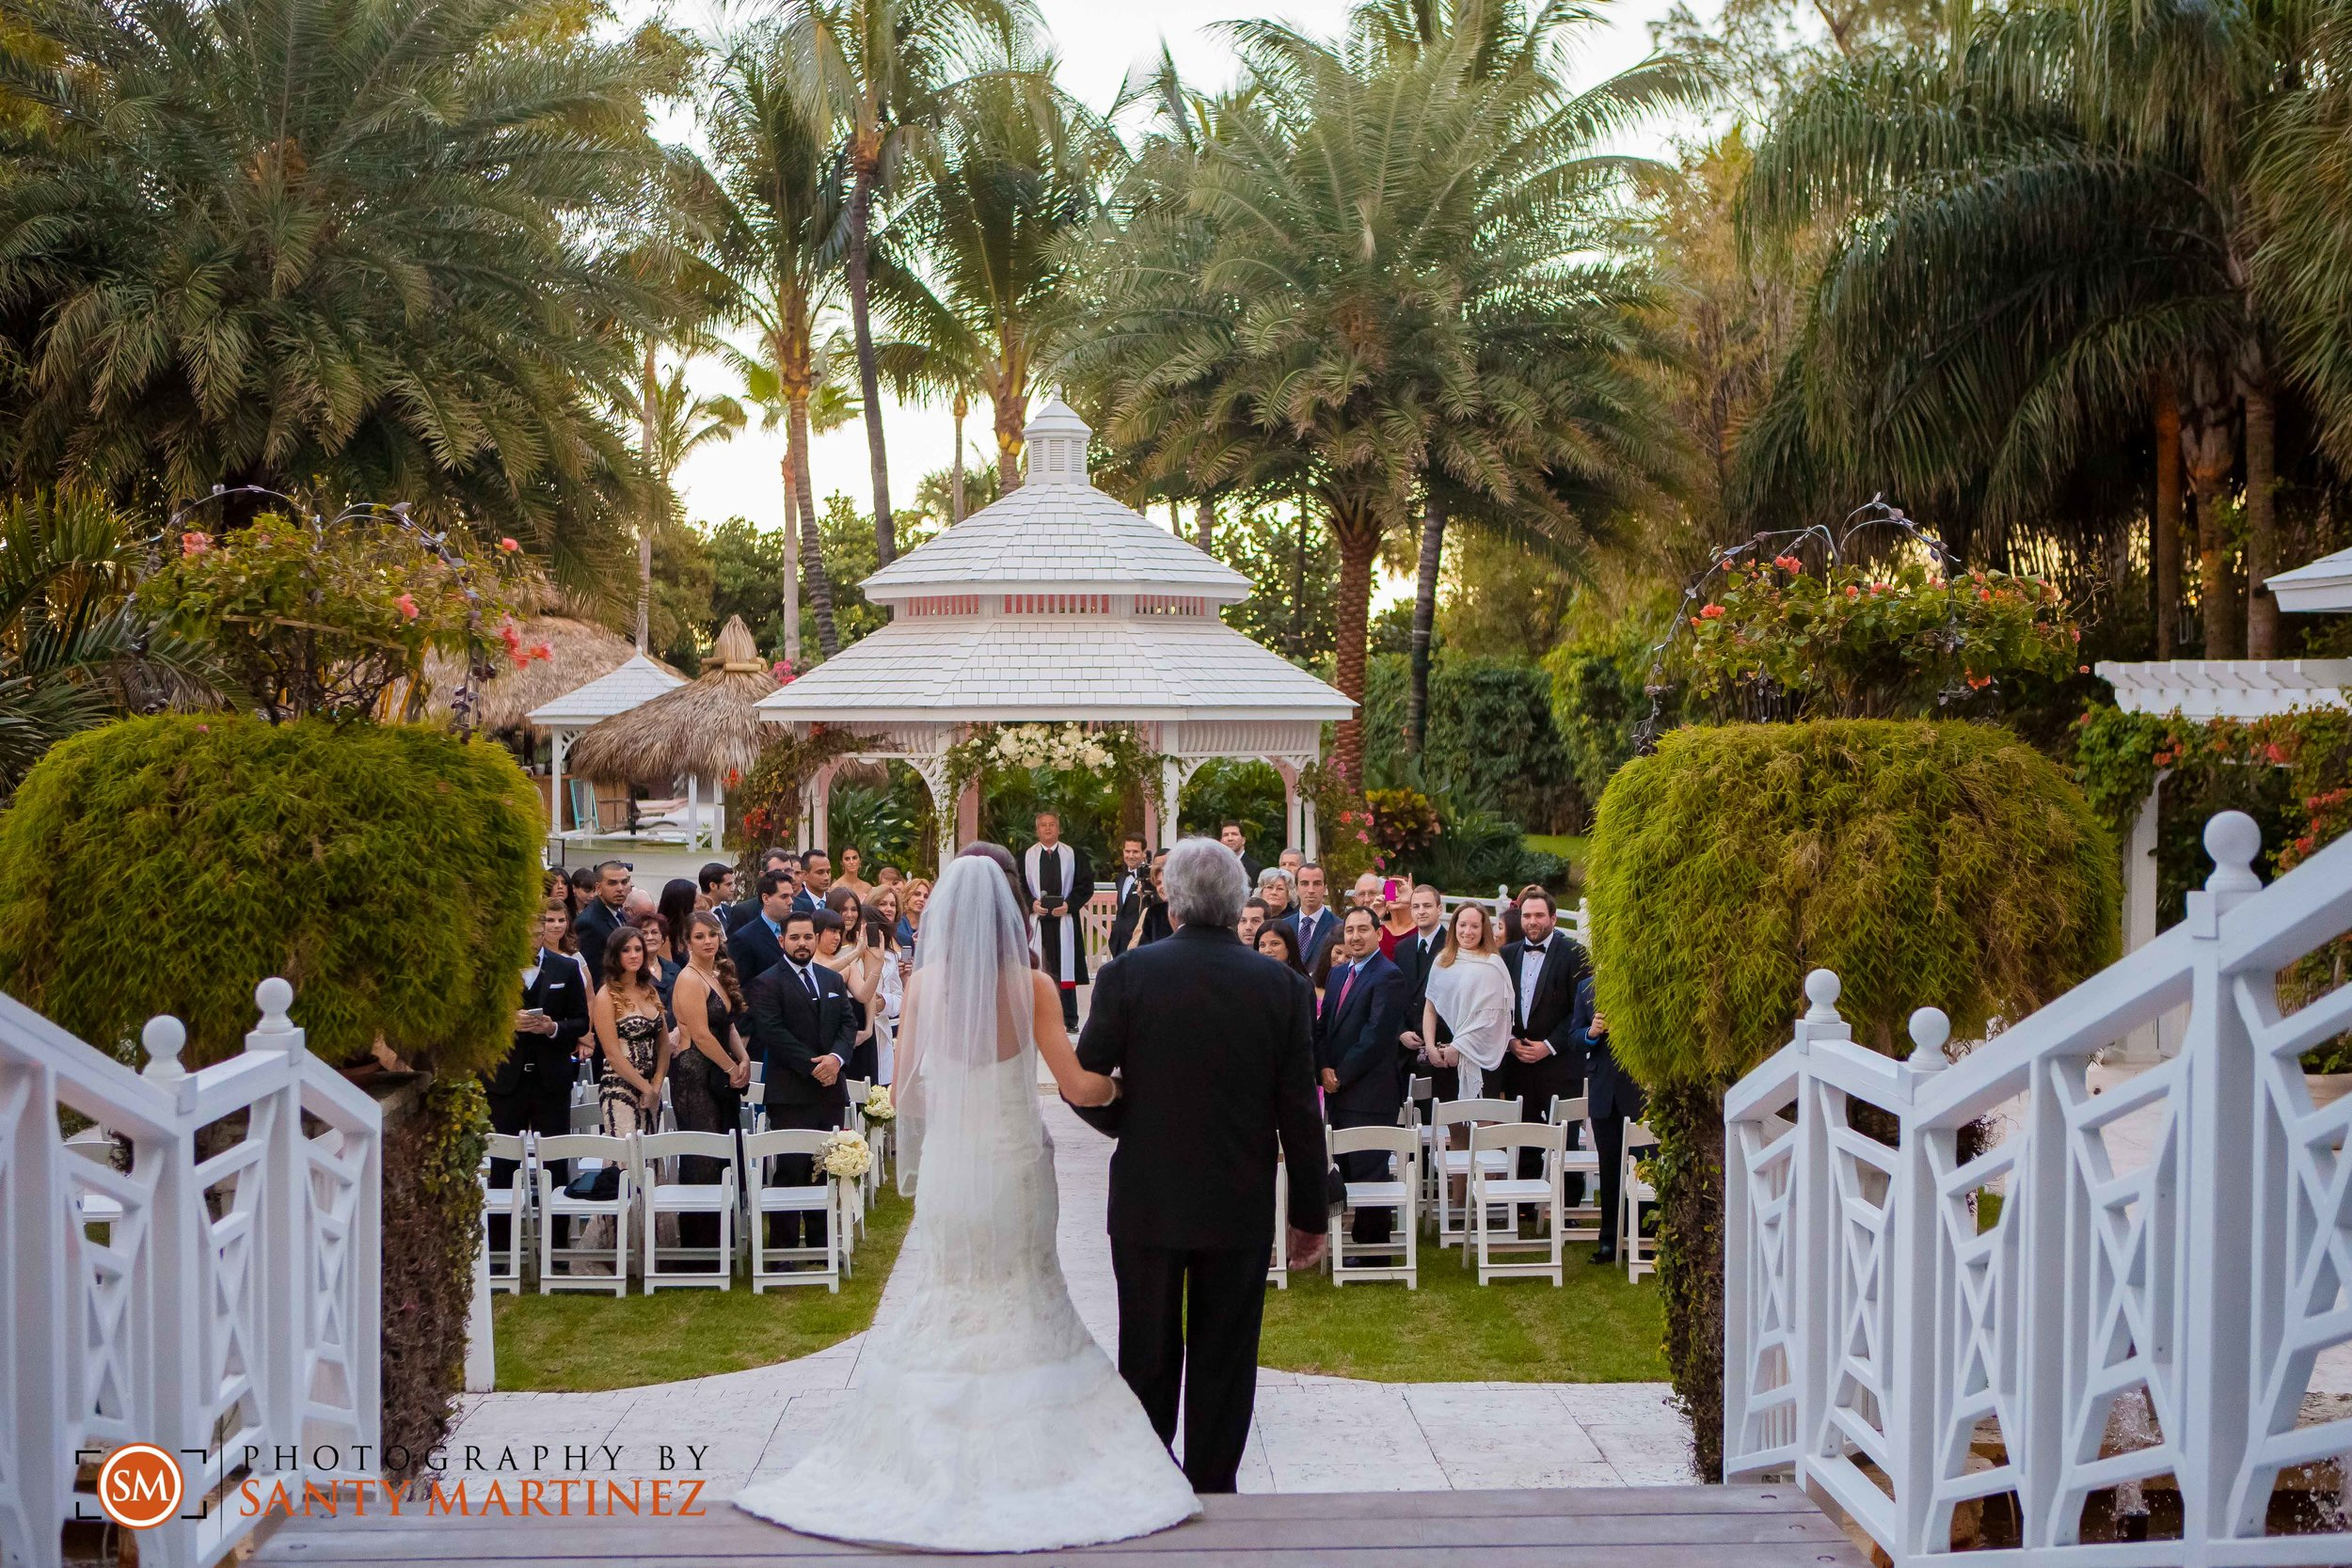 Miami Wedding Photographer - Santy Martinez -22.jpg